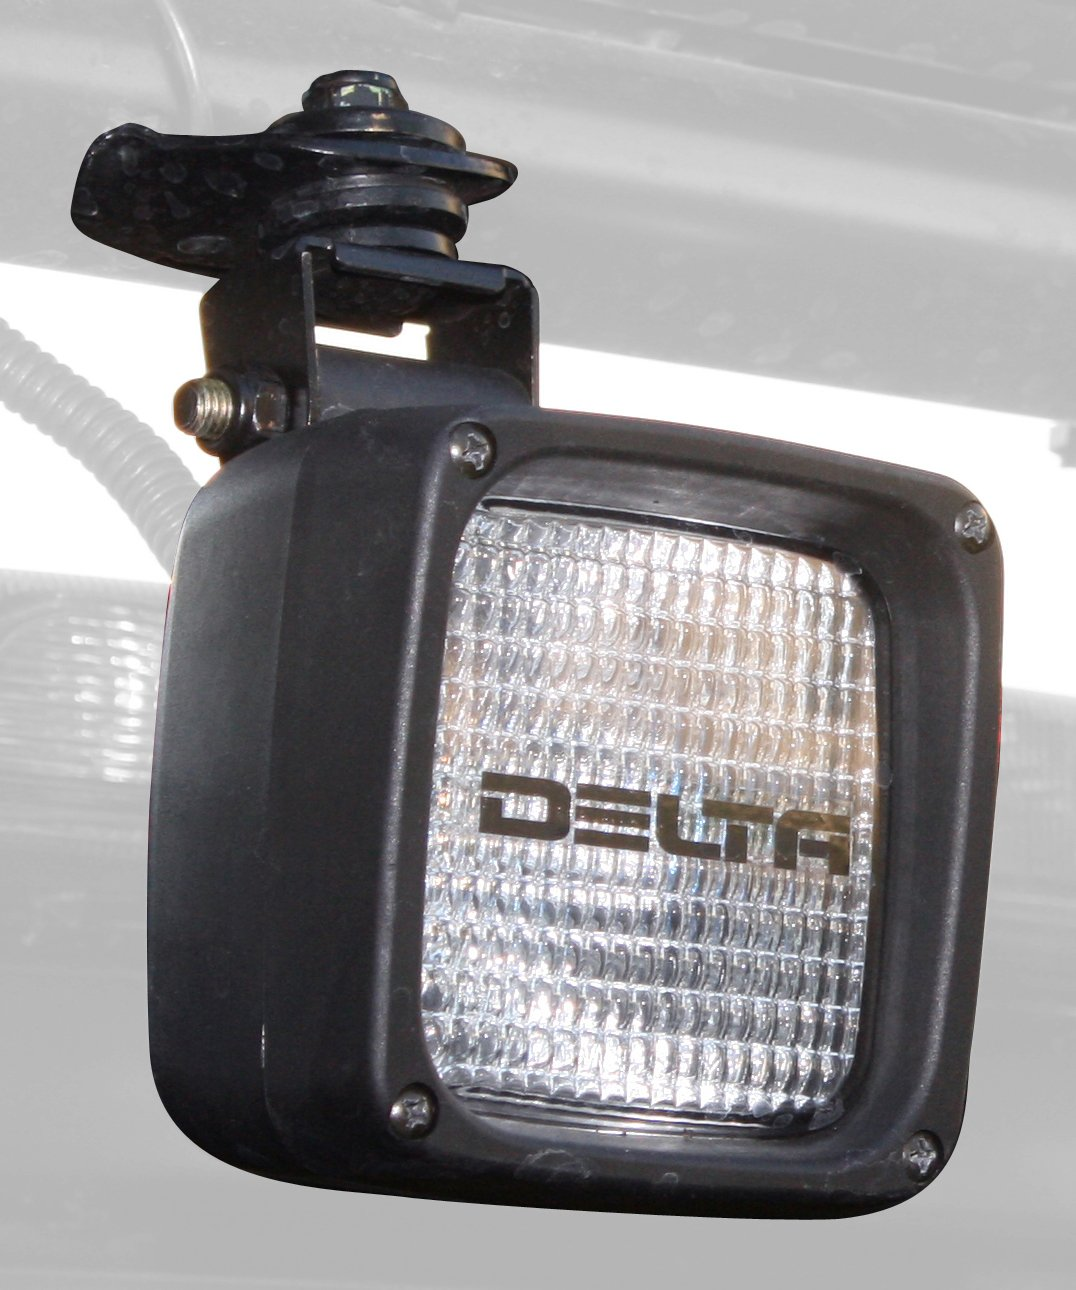 Delta Lights (01-2959-50X) 290H Series 4' Square Waterproof Xenon Work/Flood/Back-up Lights - Pair